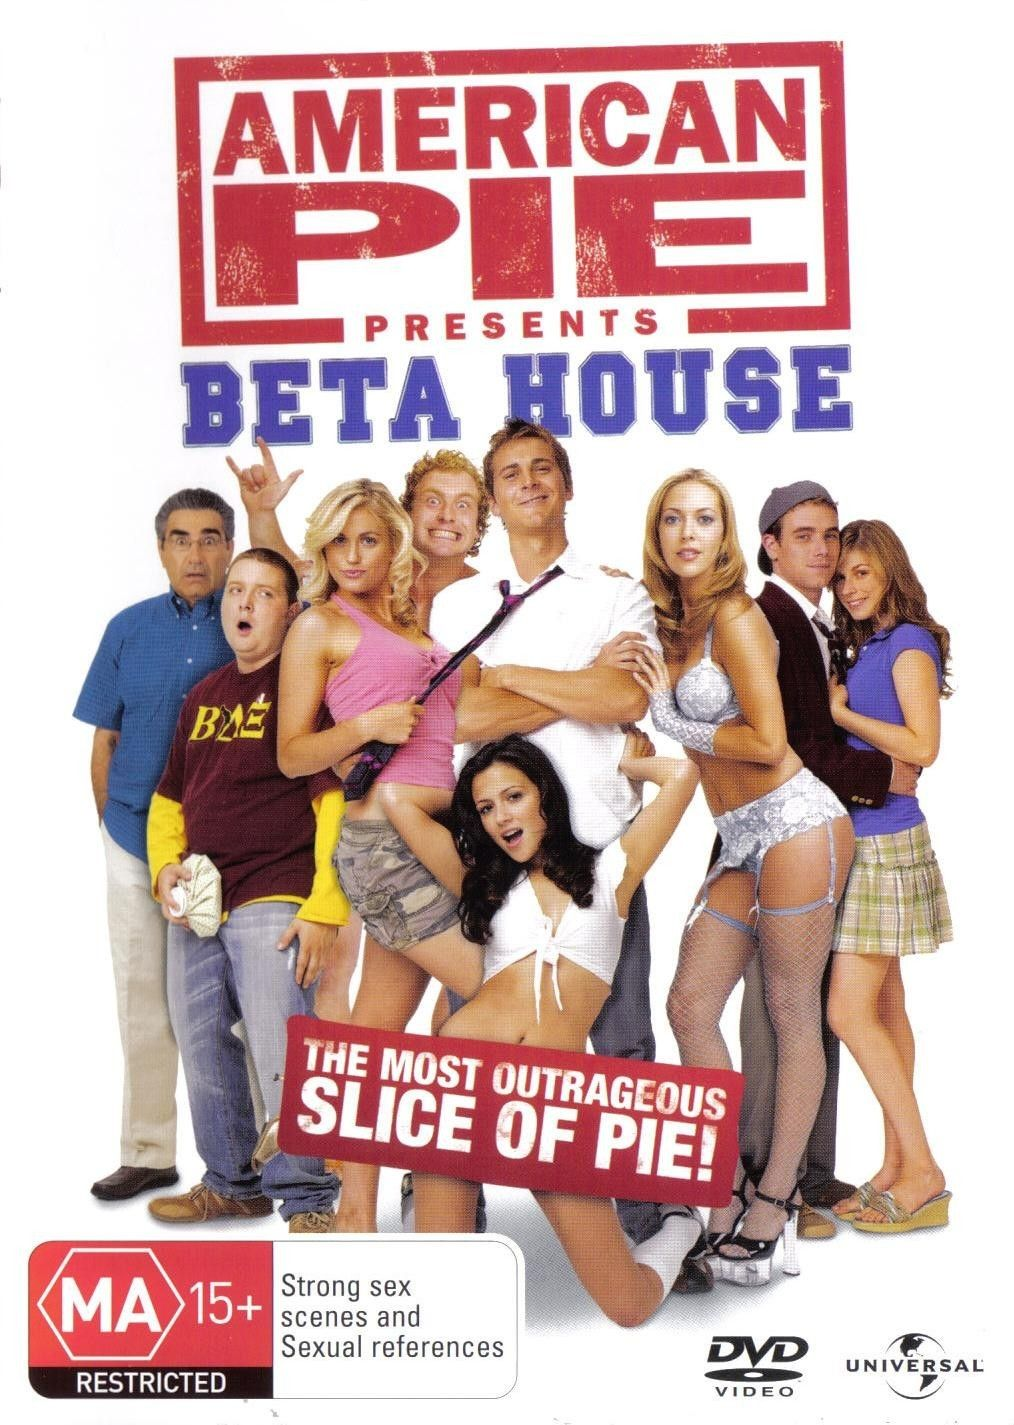 Pin By Shawn Thompson On Movies T V Shows American Pie